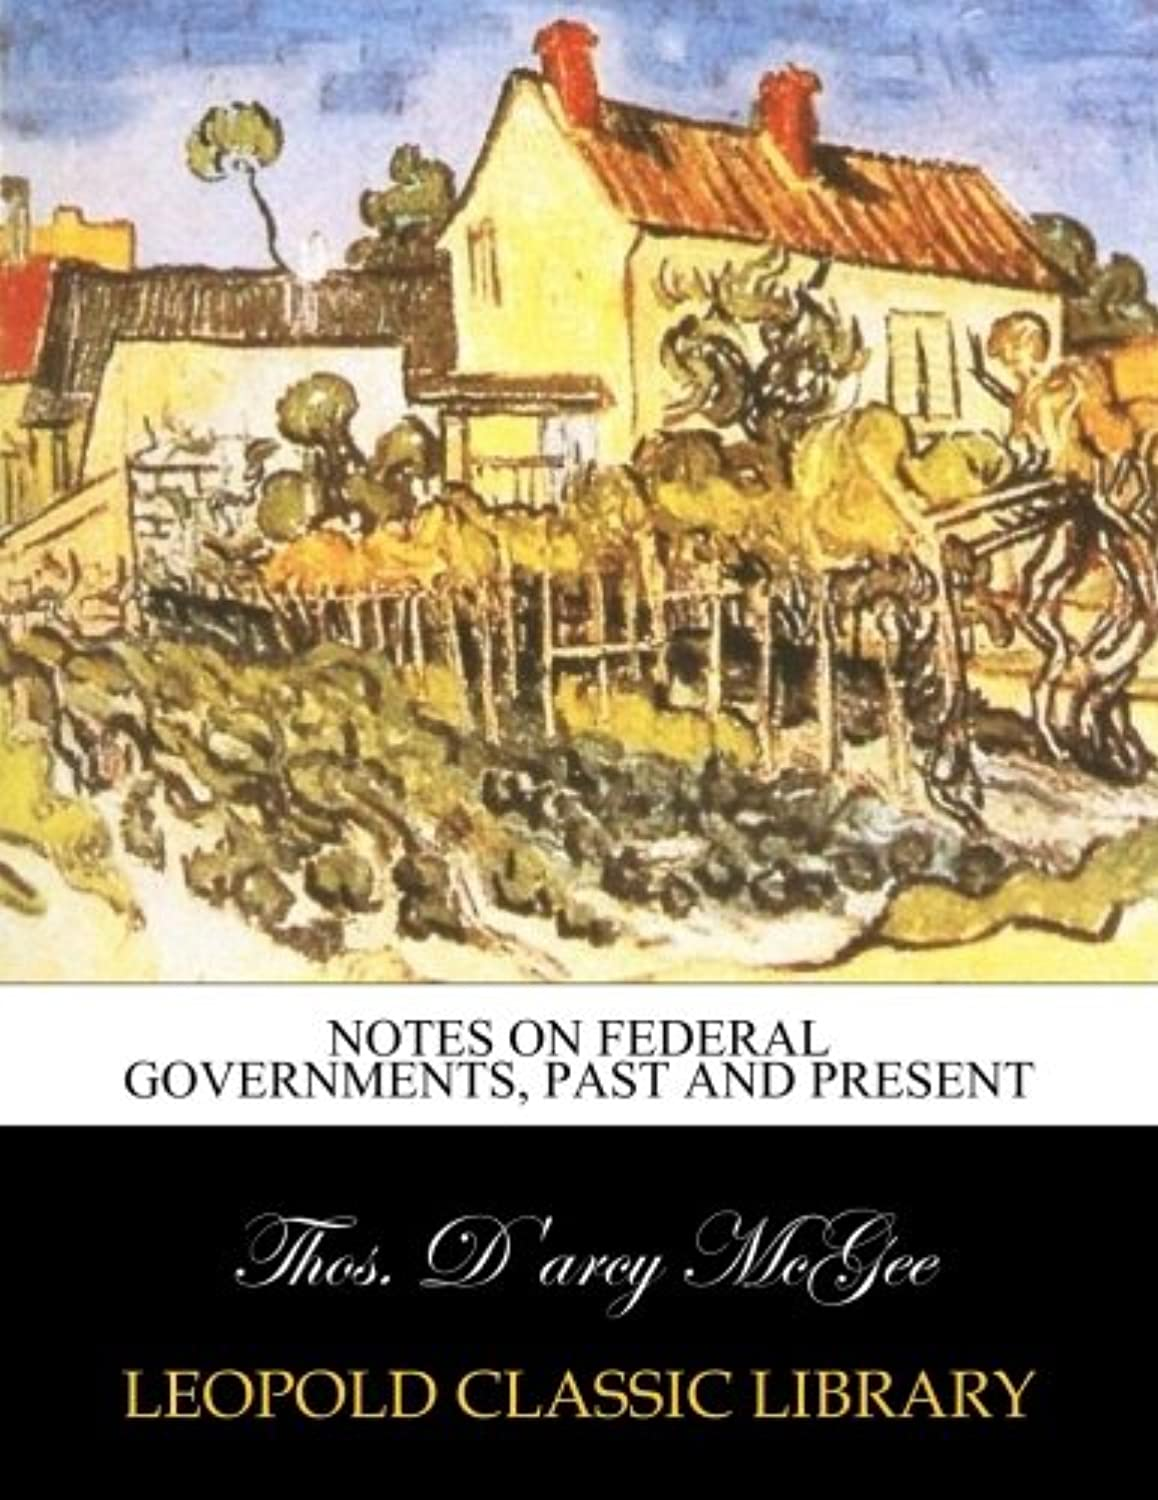 Notes on Federal Governments, Past and Present